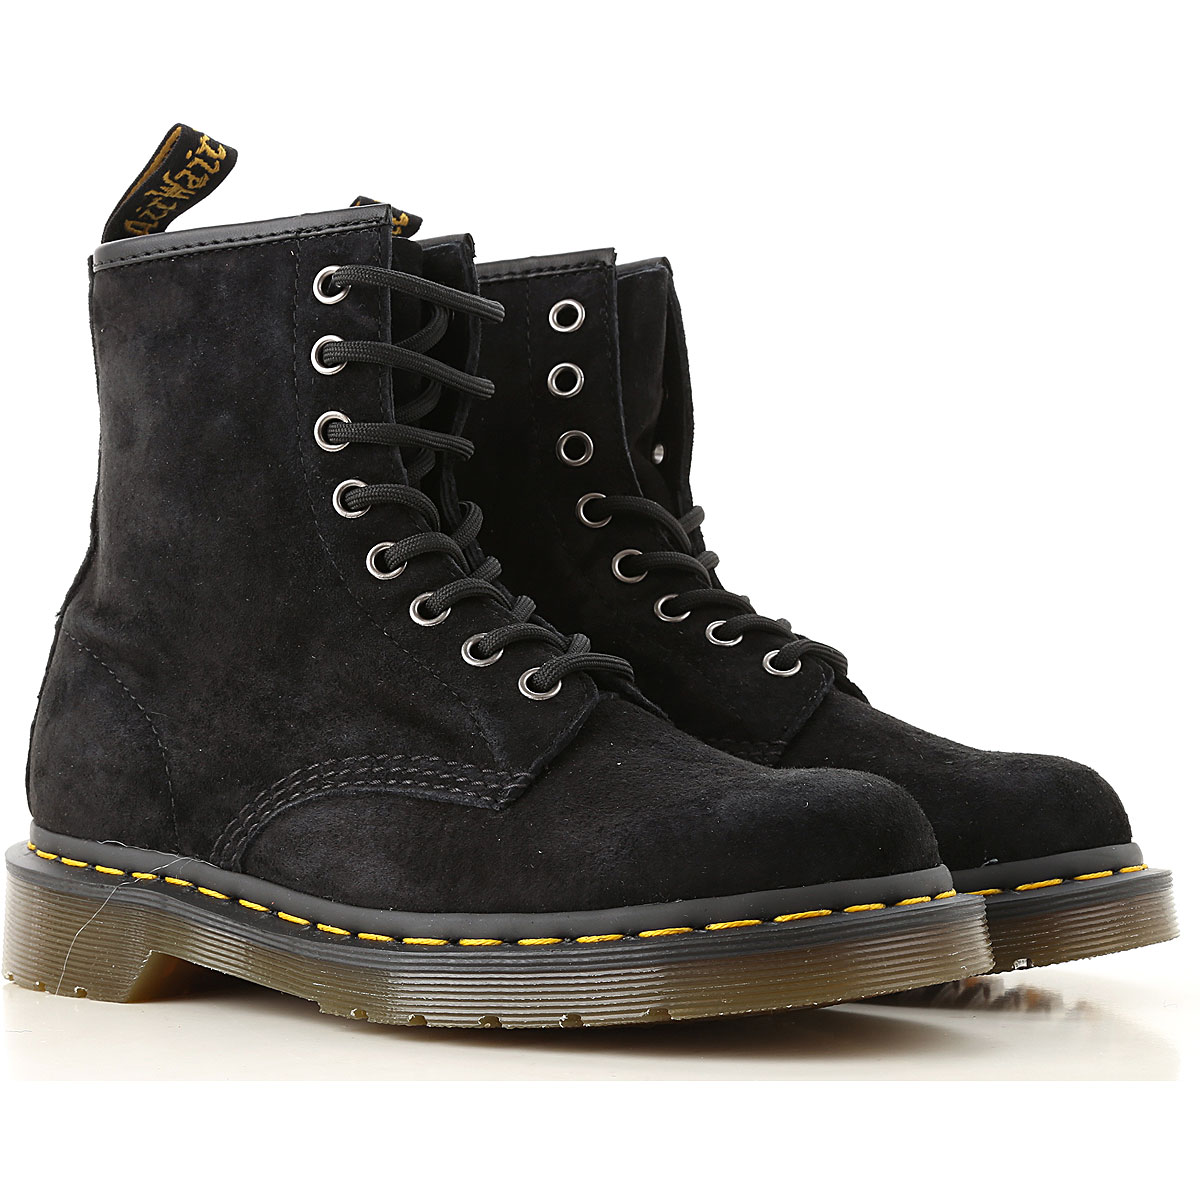 469302190e4 Womens Shoes Dr. Martens